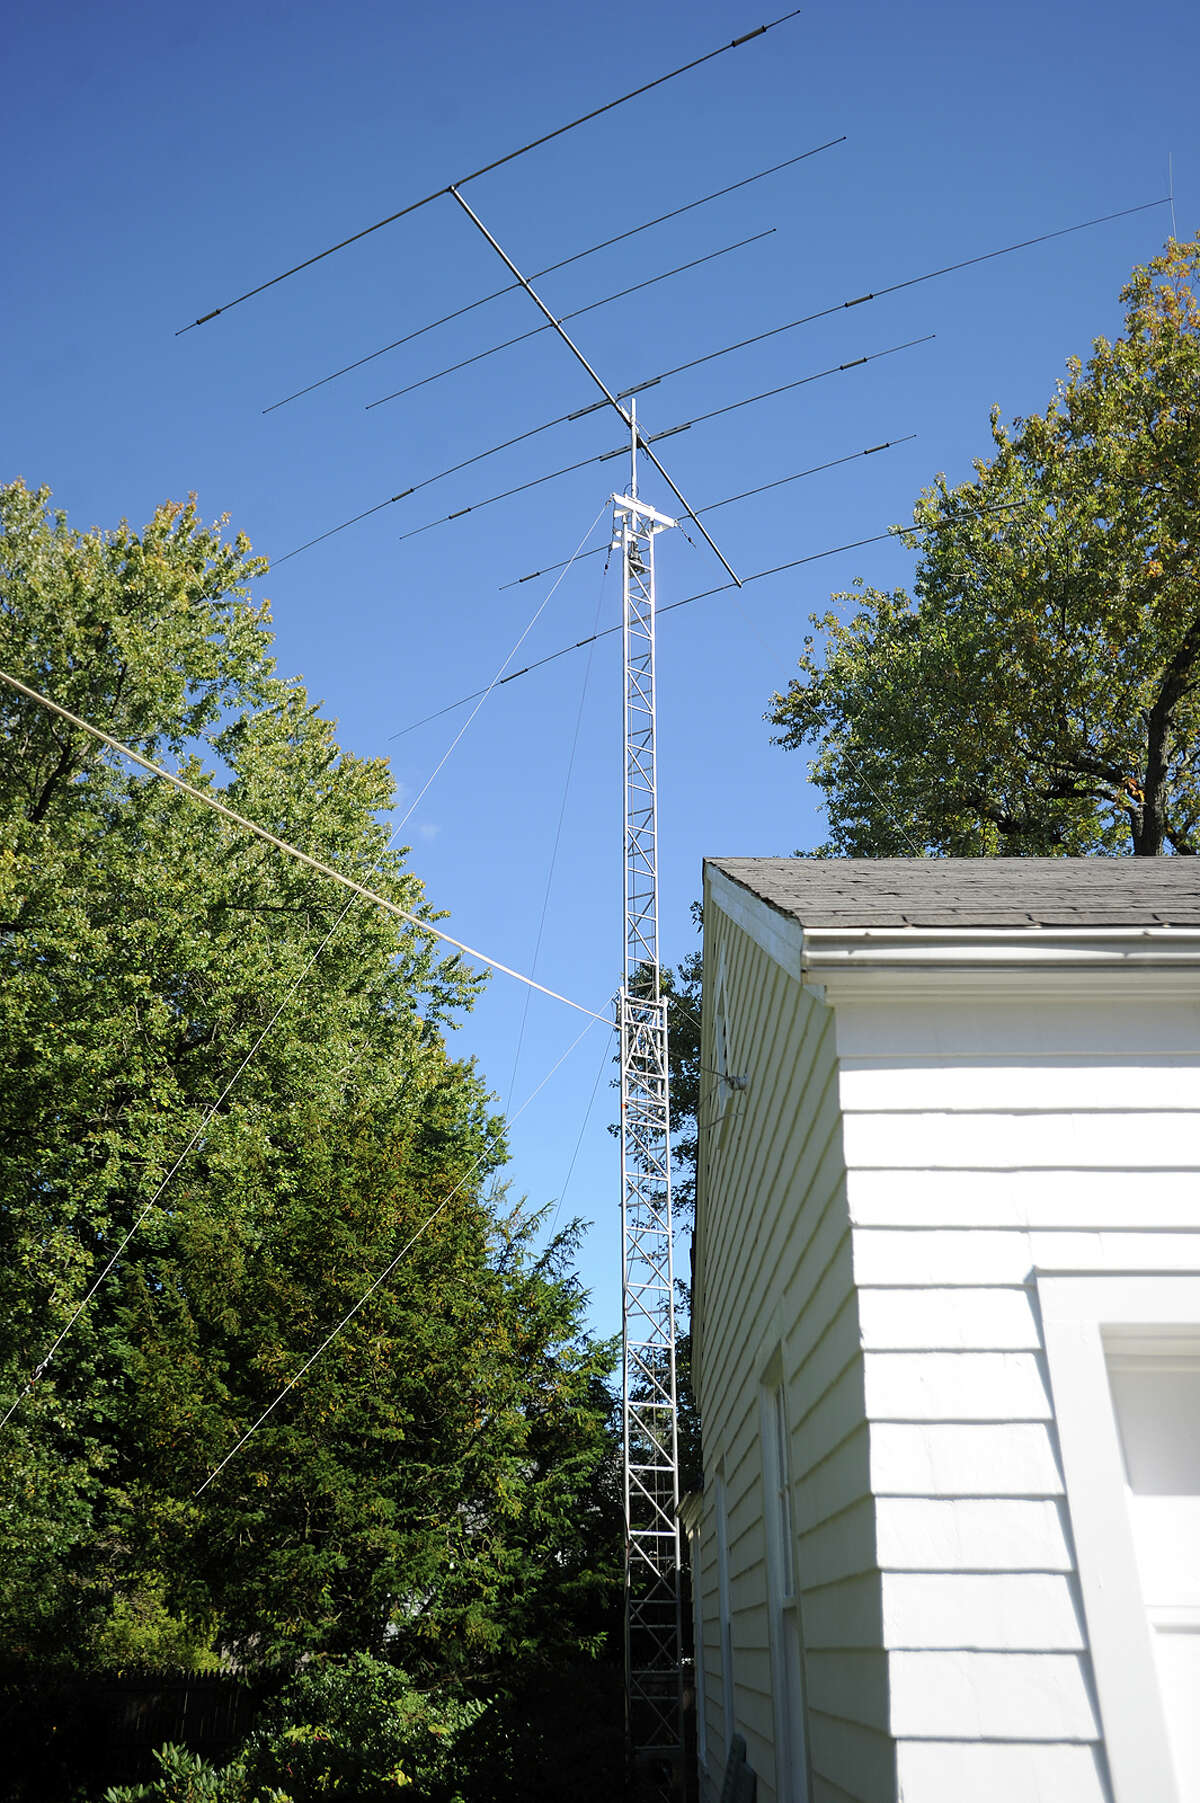 One of ham radio operator Bruce Moore's antennas outside his home in Fairfield, Conn. on Thursday, October 15, 2015.